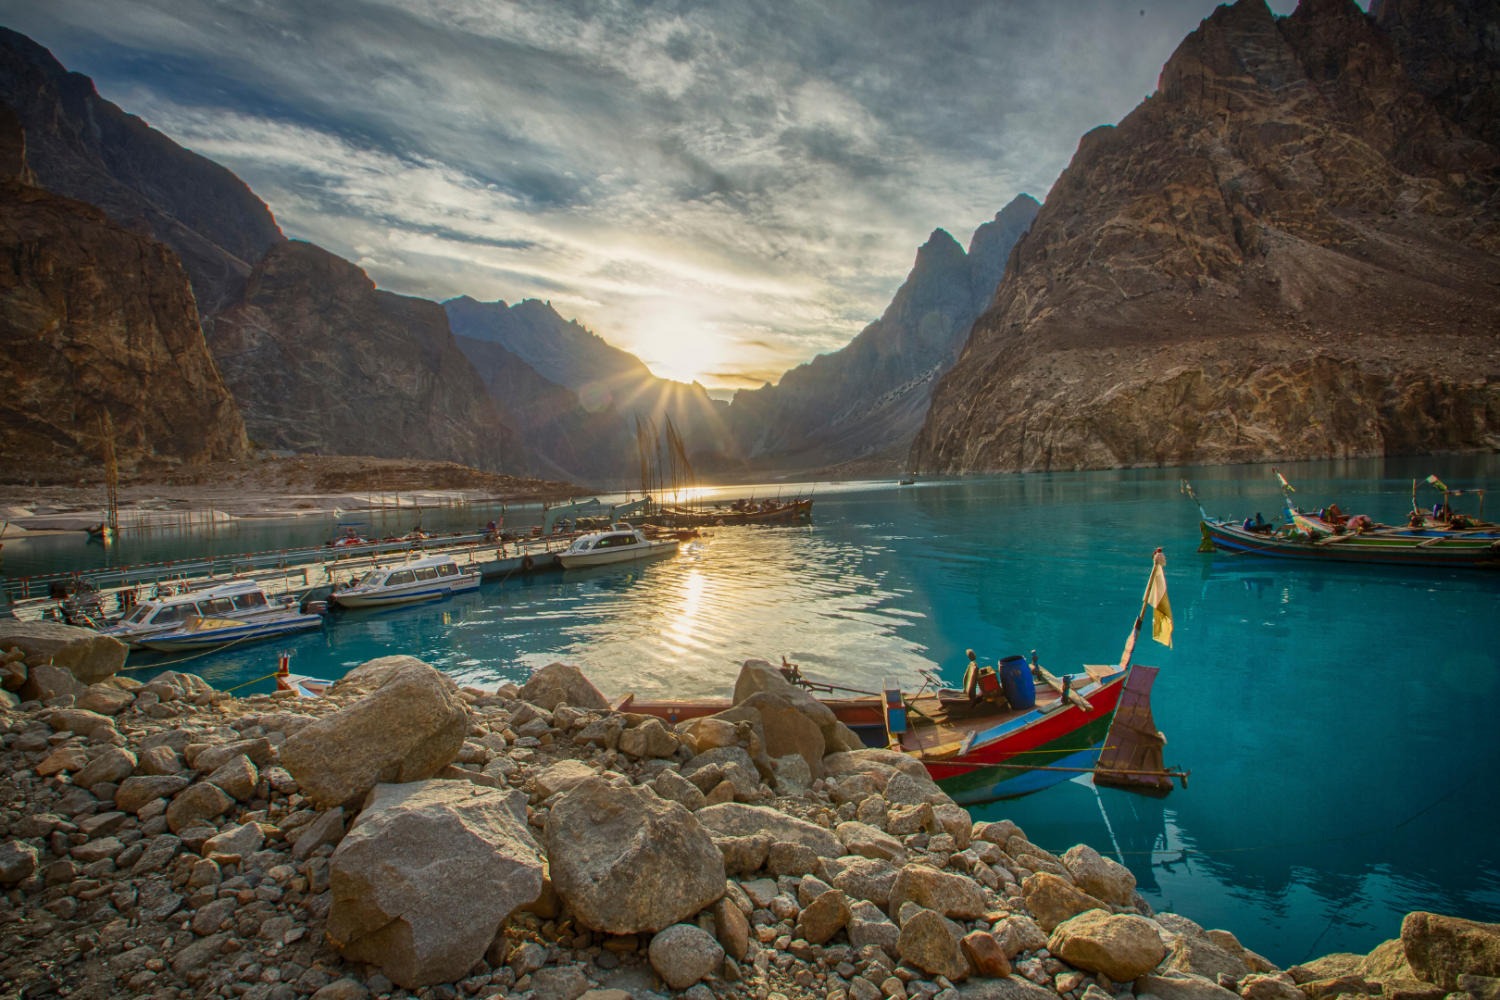 attabad lake in summer with boats - rozefstourism.com